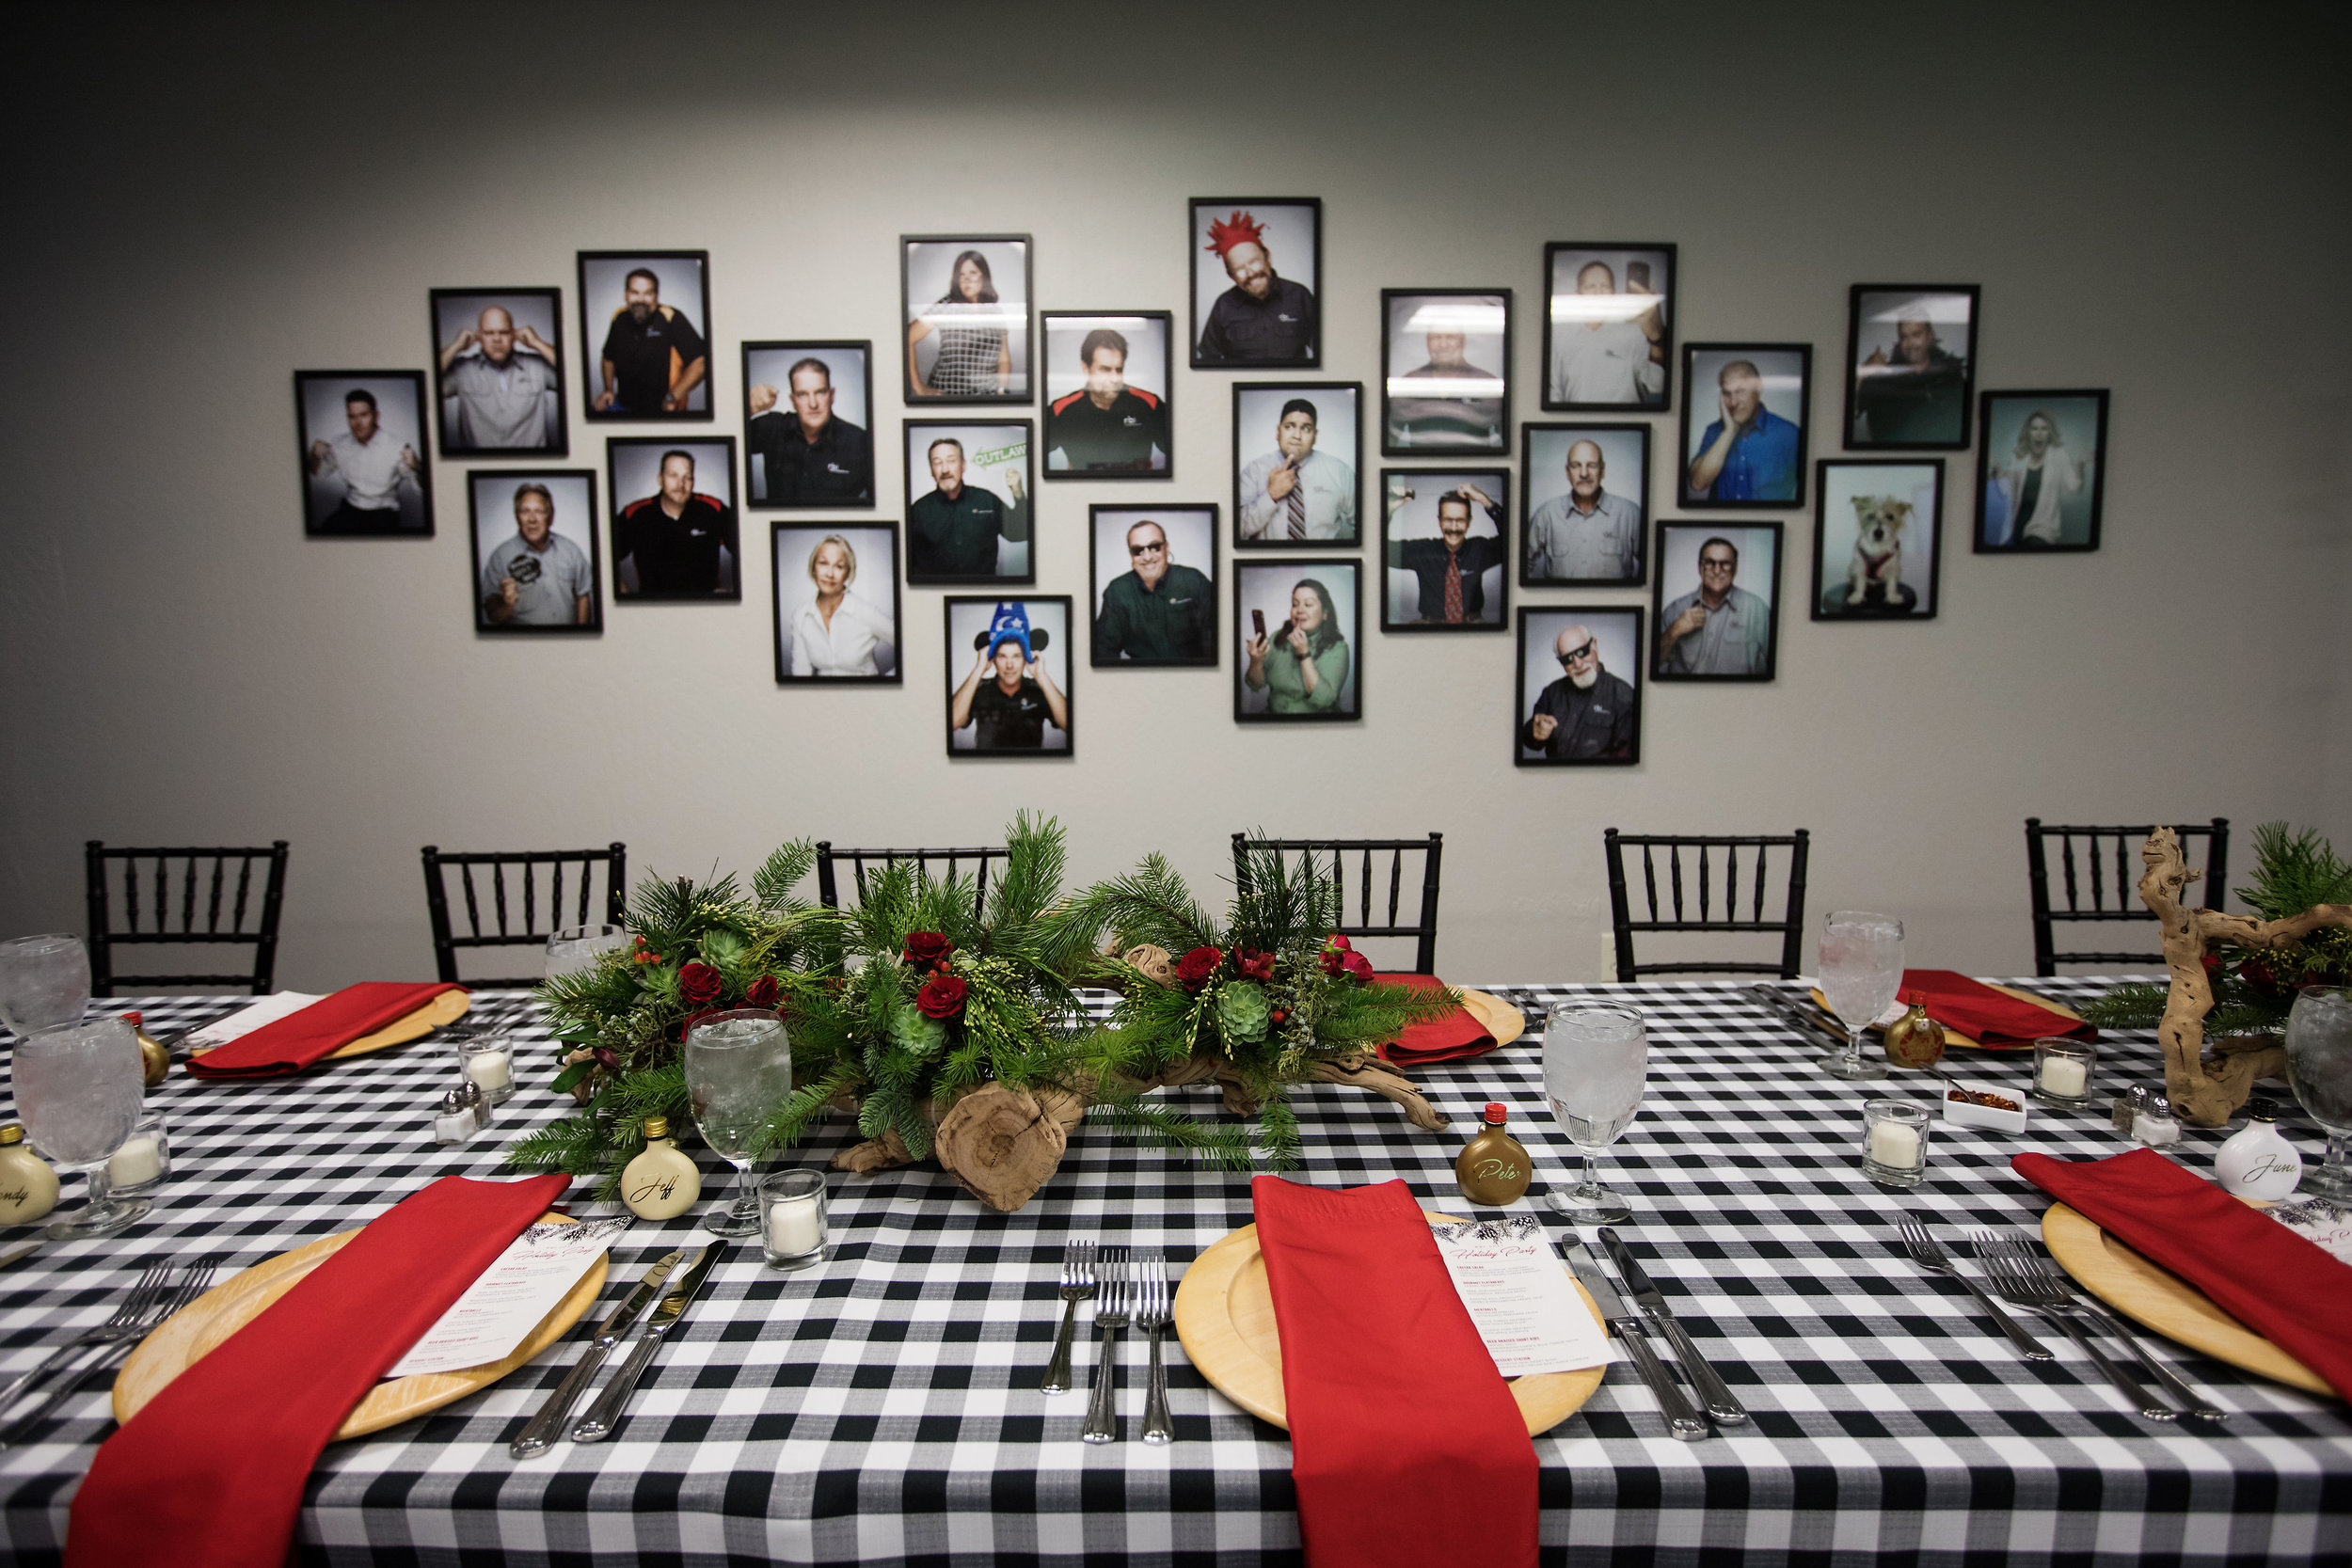 3 staff photo wooden charger chiavari chair christmas party christmas dinner red and green centerpieces red rose succulent driftwood centerpieces black and white checkered linen family dinner staff dinner Life Design Events photos by Largo Photography.jpg